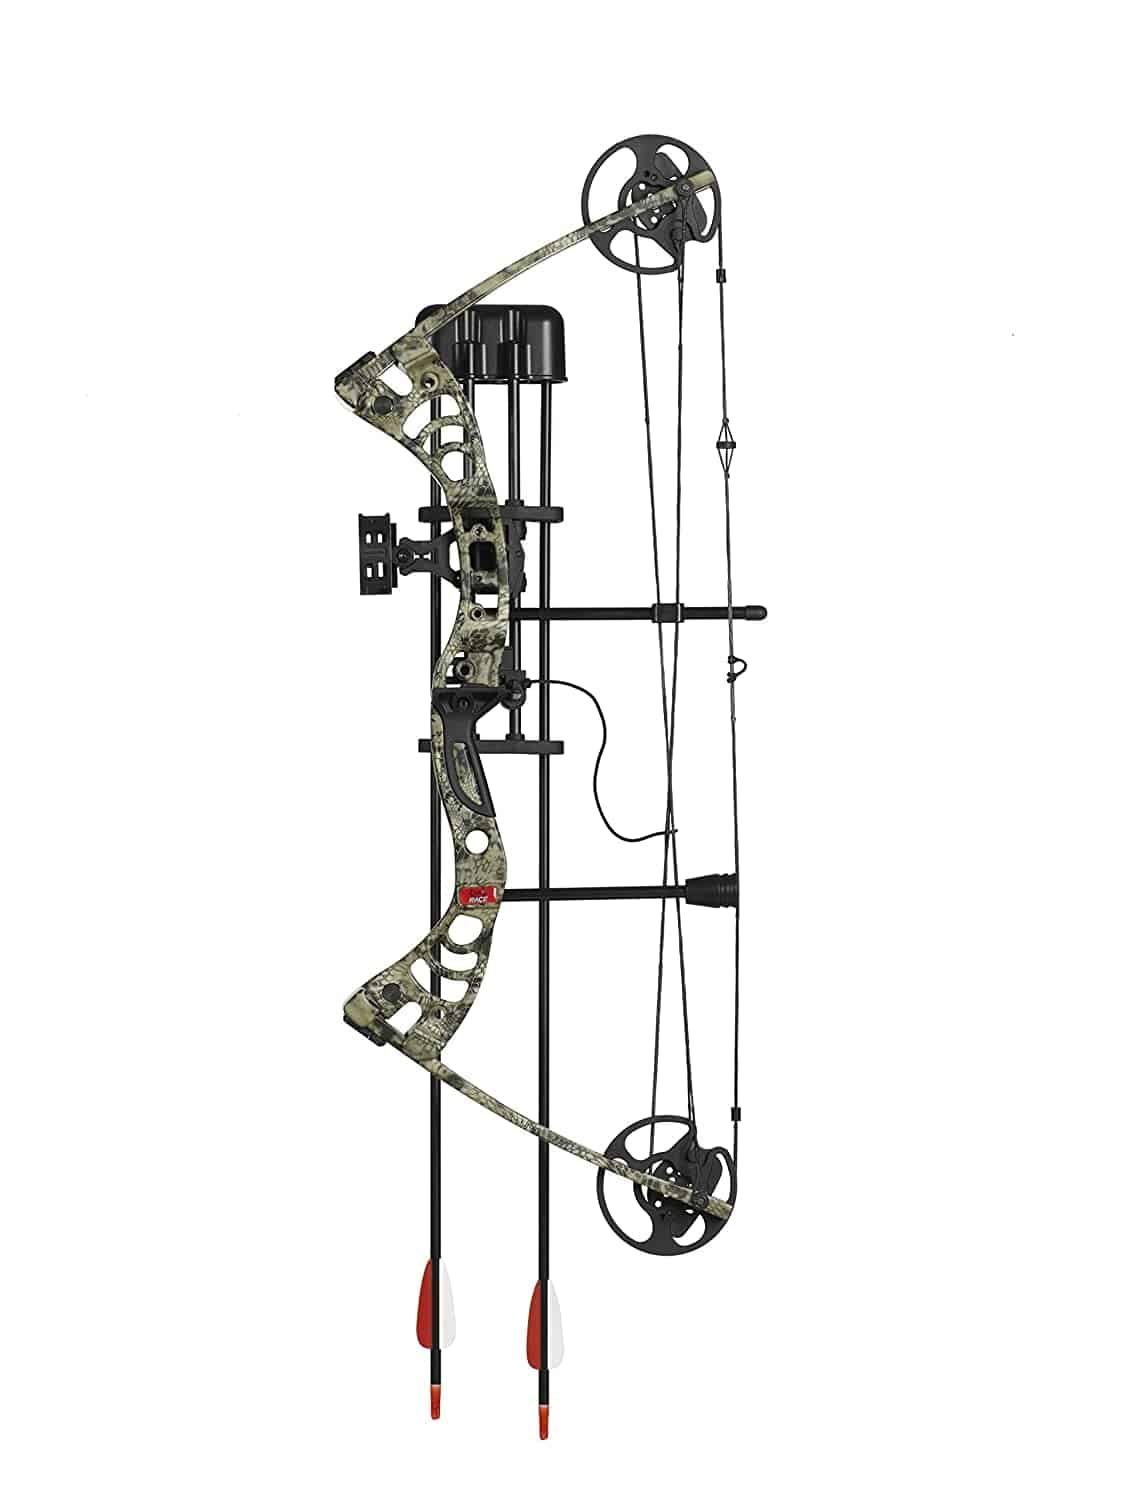 Velocity Youth Archery Race 4×4 Compound Bow Package